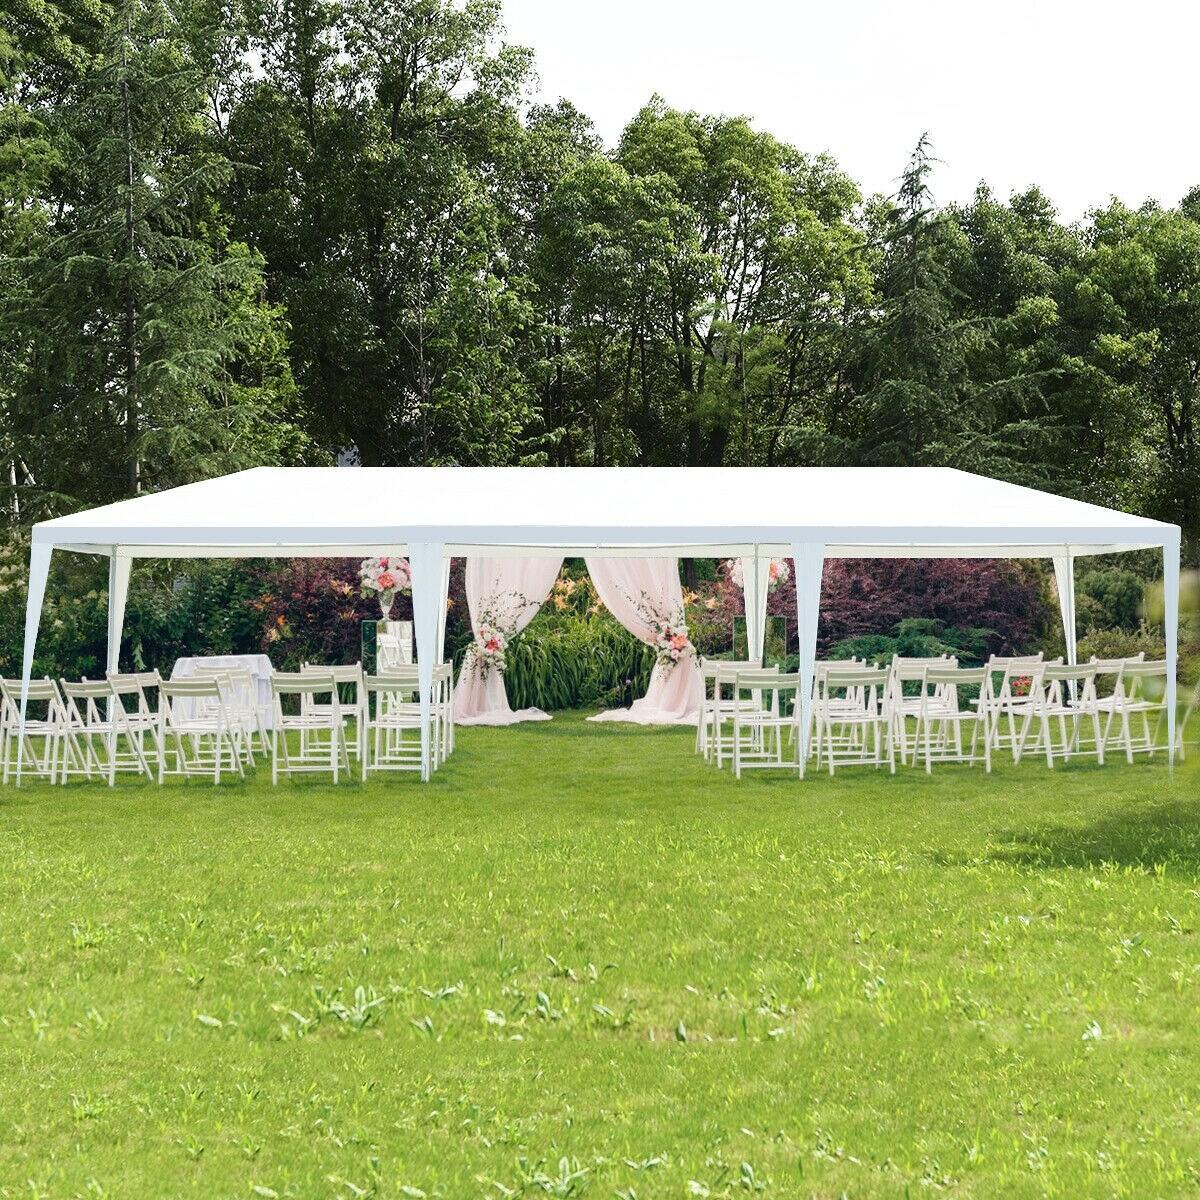 10' x 30' Outdoor Wedding Party Event Tent Gazebo Canopy